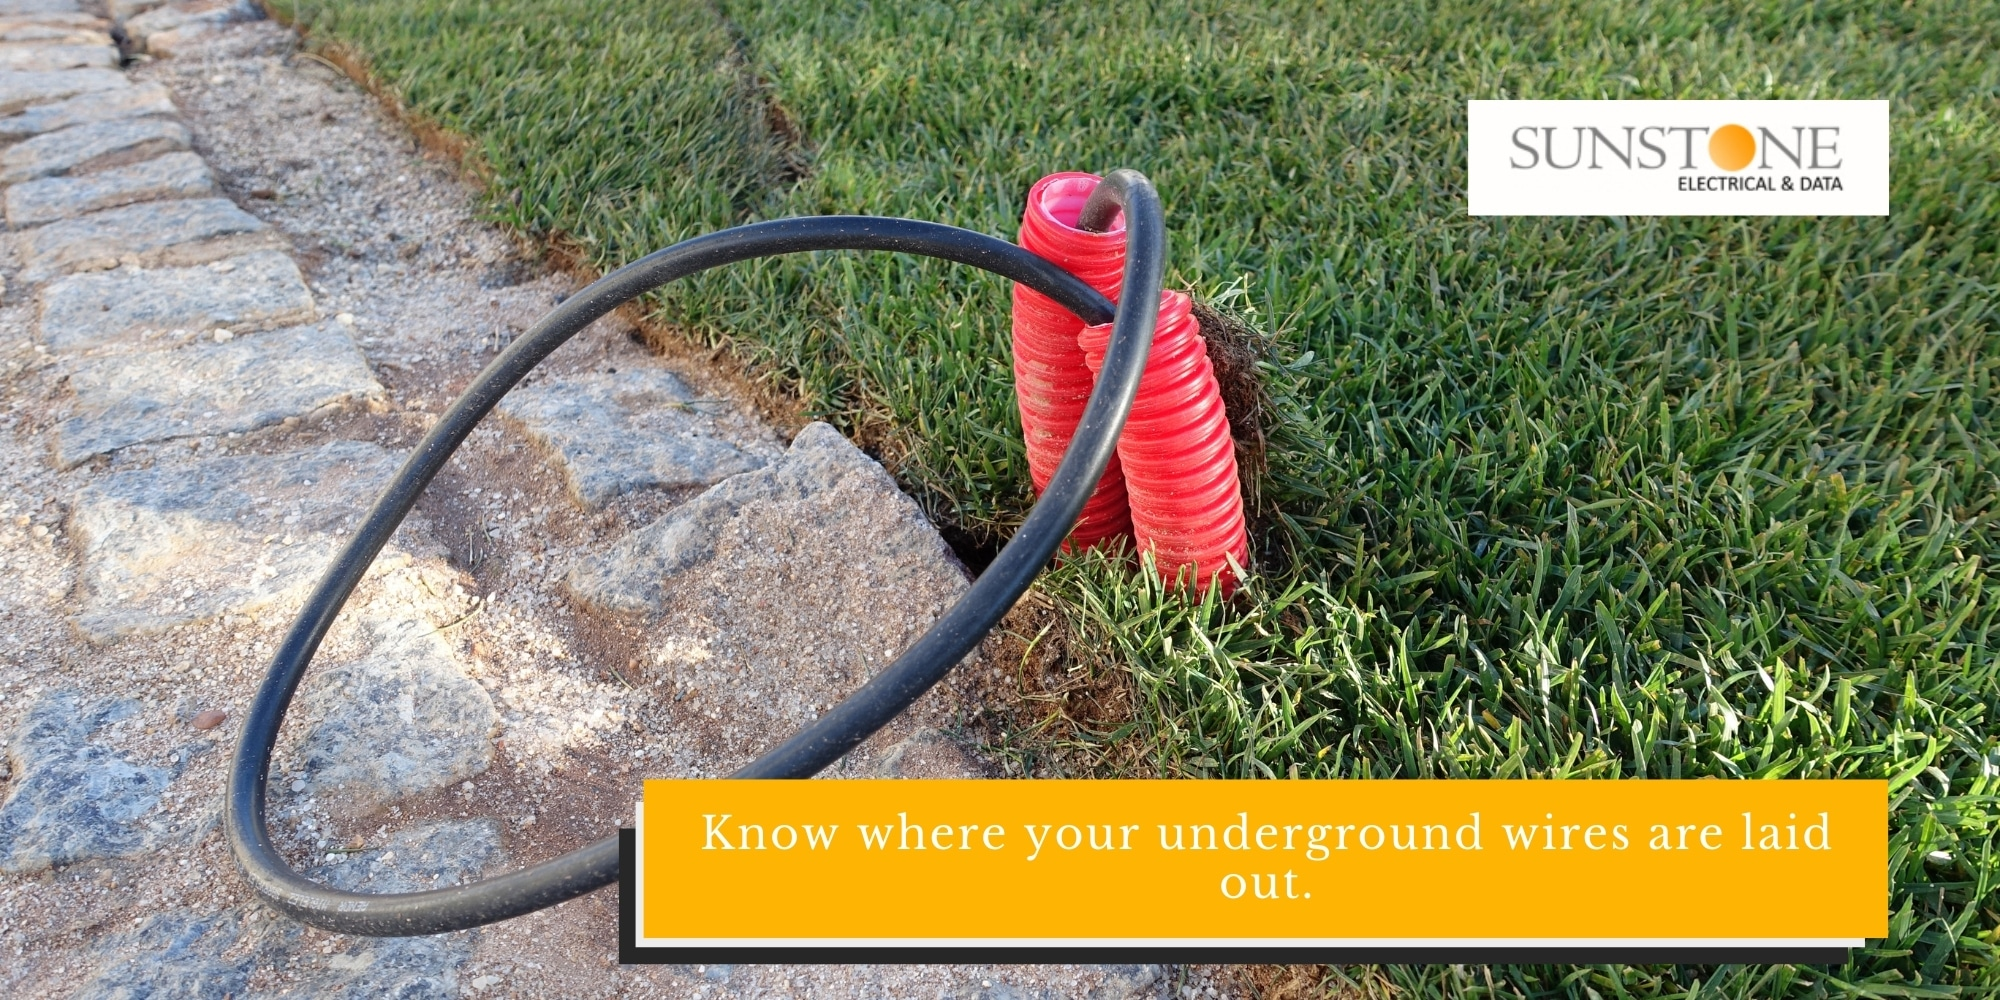 Know where your underground wires are laid out.